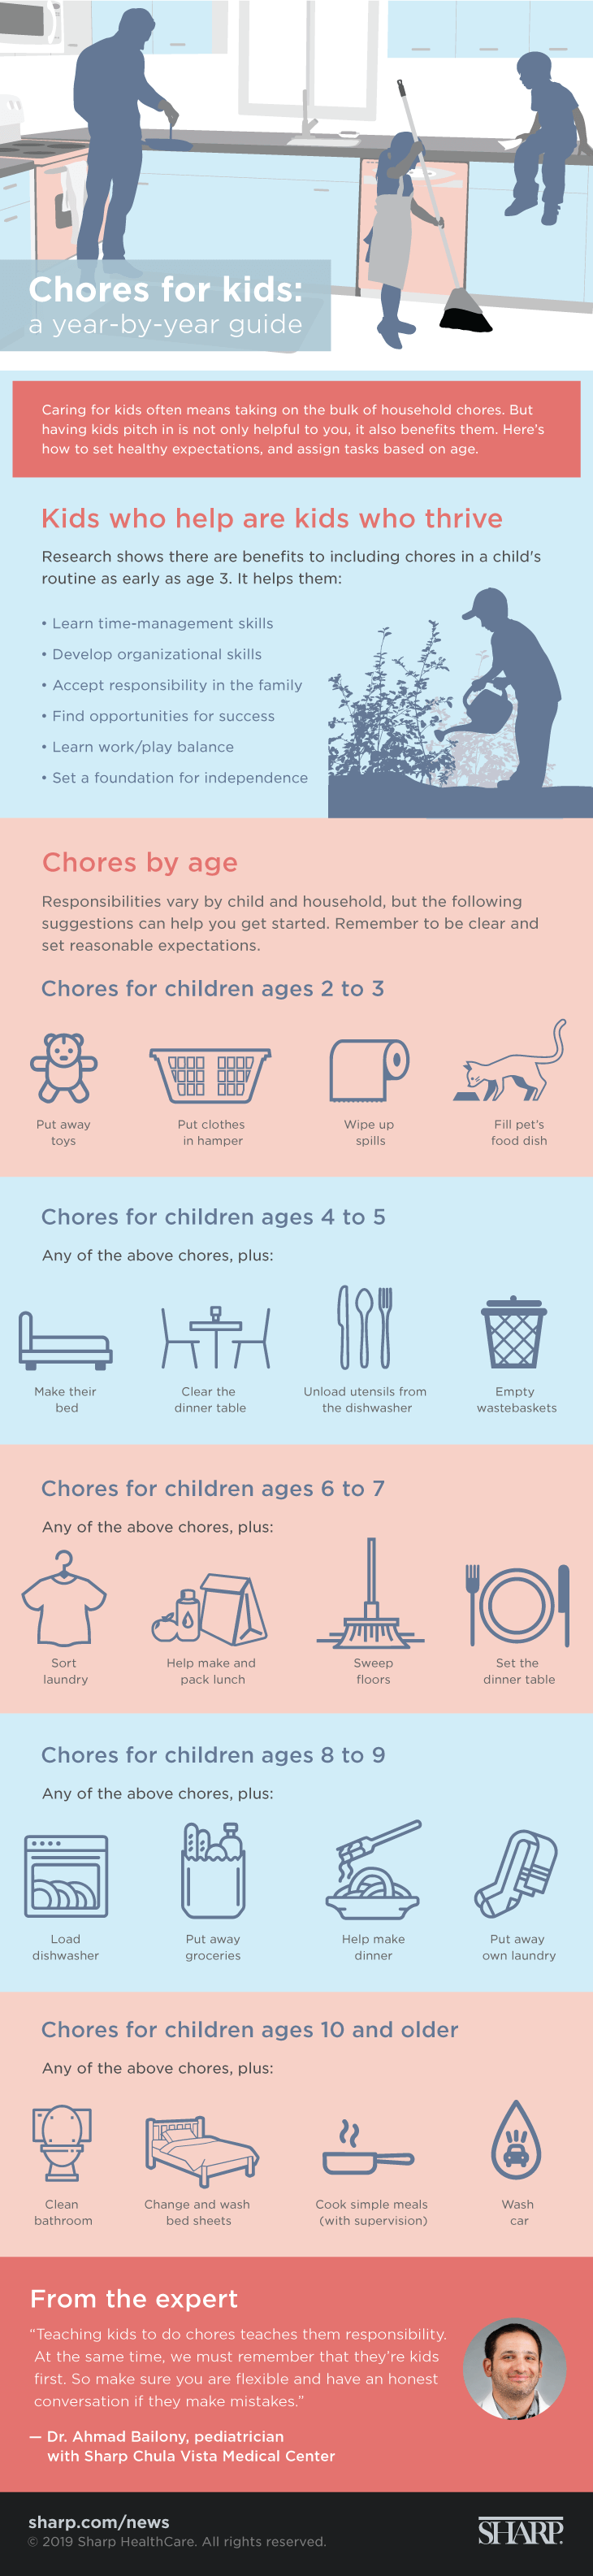 Chores for kids: a year-by-year guide (infographic). Caring for kids often means taking on the bulk of household chores. But having kids pitch in is not only helpful to you, it also benefits them. Here's how to set healthy expectations, and assign tasks based on age. Kids who help are kids who thrive. Research shows there are benefits to including chores in a child's routine as early as age 3. It helps them: Learn time-management skills, develop organizational skills, accept responsibility in the family, find opportunities for success, learn work/play balance, set a foundation for independence. Chores by age. Responsibilities vary by child and household, but the following suggestions can help you get started. Remember to be clear and set reasonable expectations. Chores for children ages 2 to 3: Put toys away, put clothes in hamper, wipe up spills, fill pet's food dish. Chores for children ages 4 to 5: Any of the above chores plus, make their bed, clear the dinner table, unload utensils from the dishwasher, empty wastebaskets. Chores for children ages 6 to 7: Any of the above chores plus, sort laundry, help make and pack lunch, sweep floors, set the dinner table. Chores for children ages 8 to 9: Any of the above chores plus, load dishwasher, put away groceries, help make dinner, put away own laundry. Chores for children ages 10 and older: Any of the above chores plus, clean bathroom, change and wash bed sheets, cook simple meals (with supervision), wash car. From the expert: Teaching kids to do chores teaches them responsibility. At the same time, we must remember that they're kids first. So make sure you are flexible and have an honest conversation if they make mistakes. - Dr. Ahmad Bailony, pediatrician with Sharp Chula Vista Medical Center. sharp.com/news. 2019 Sharp HealthCare. All rights reserved.